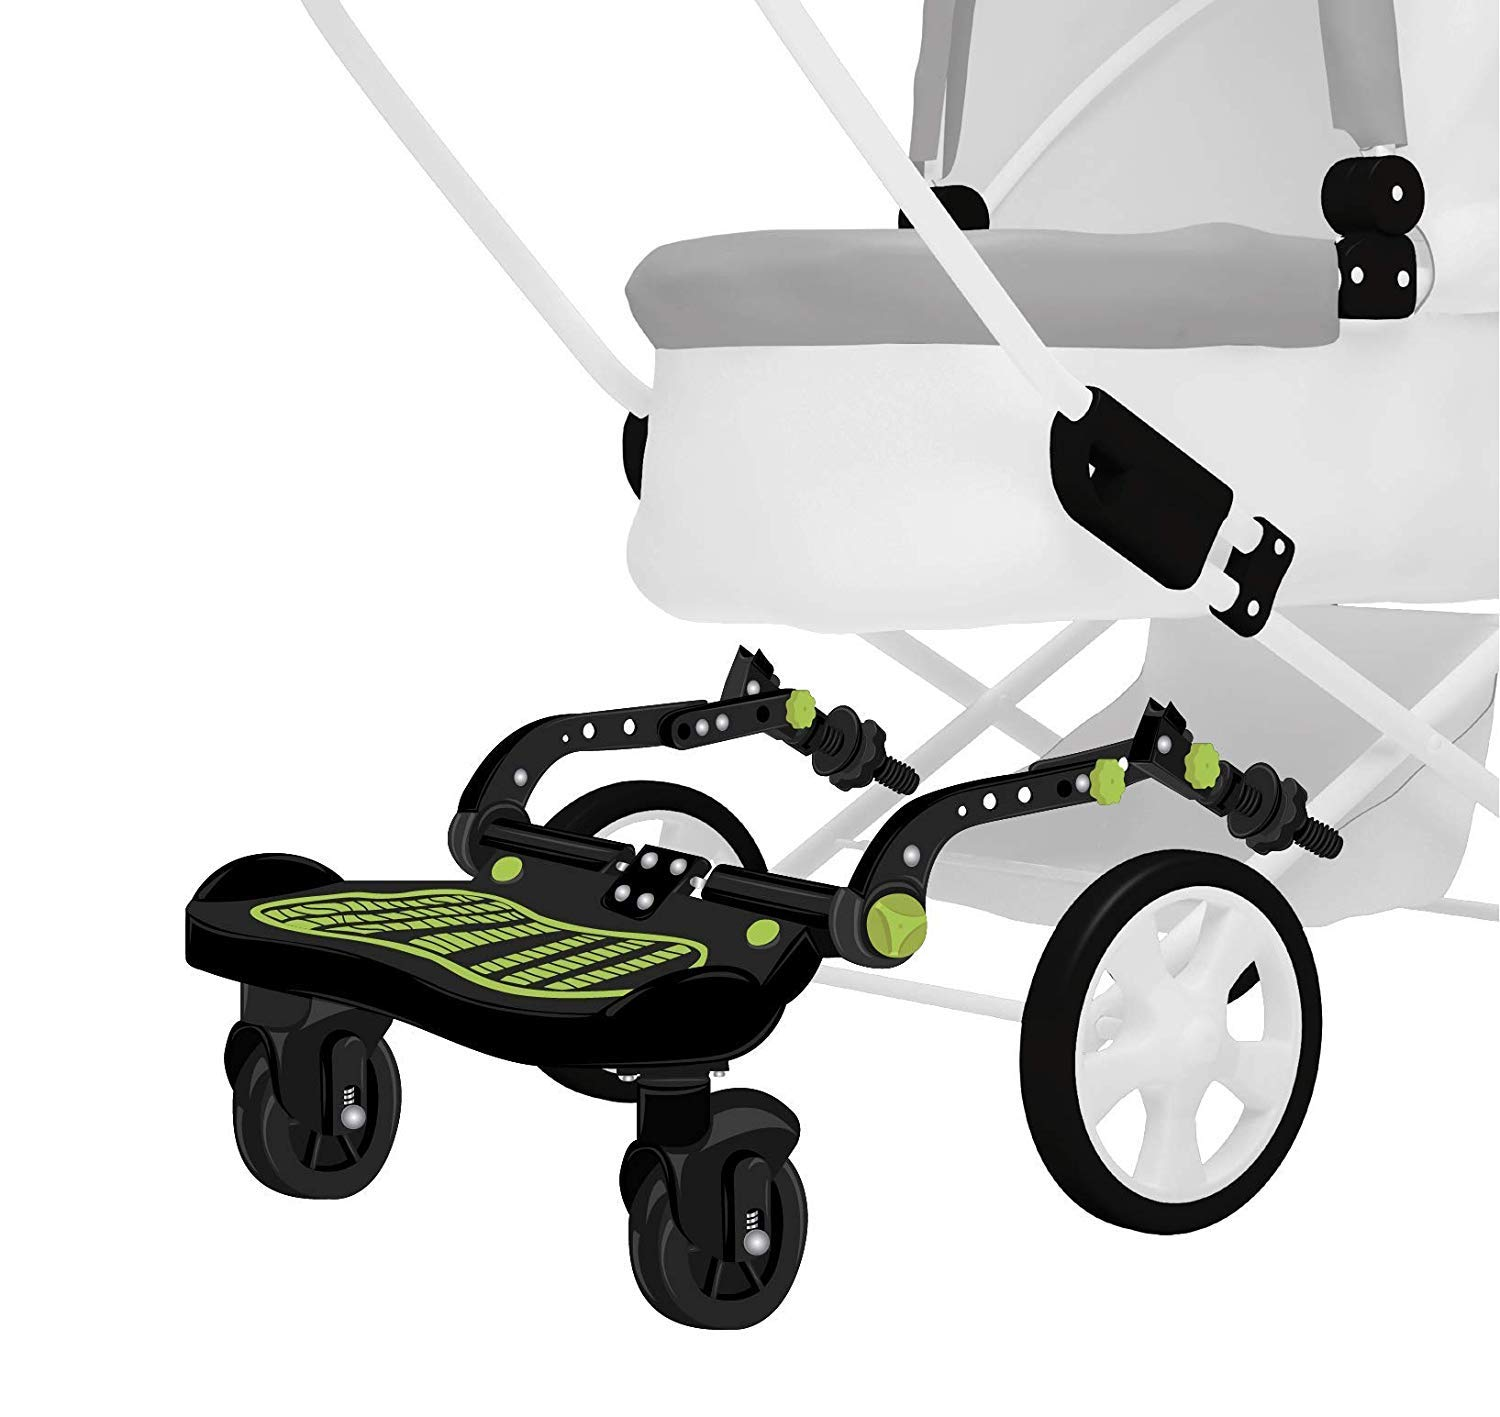 Universal Stroller Glider Board for Kids | Latch System for Easy Setup, Supports up to 70 lbs, Reinforced Stand Board with Non-Slip Adhesive, Higher and Wider Feet Clearance